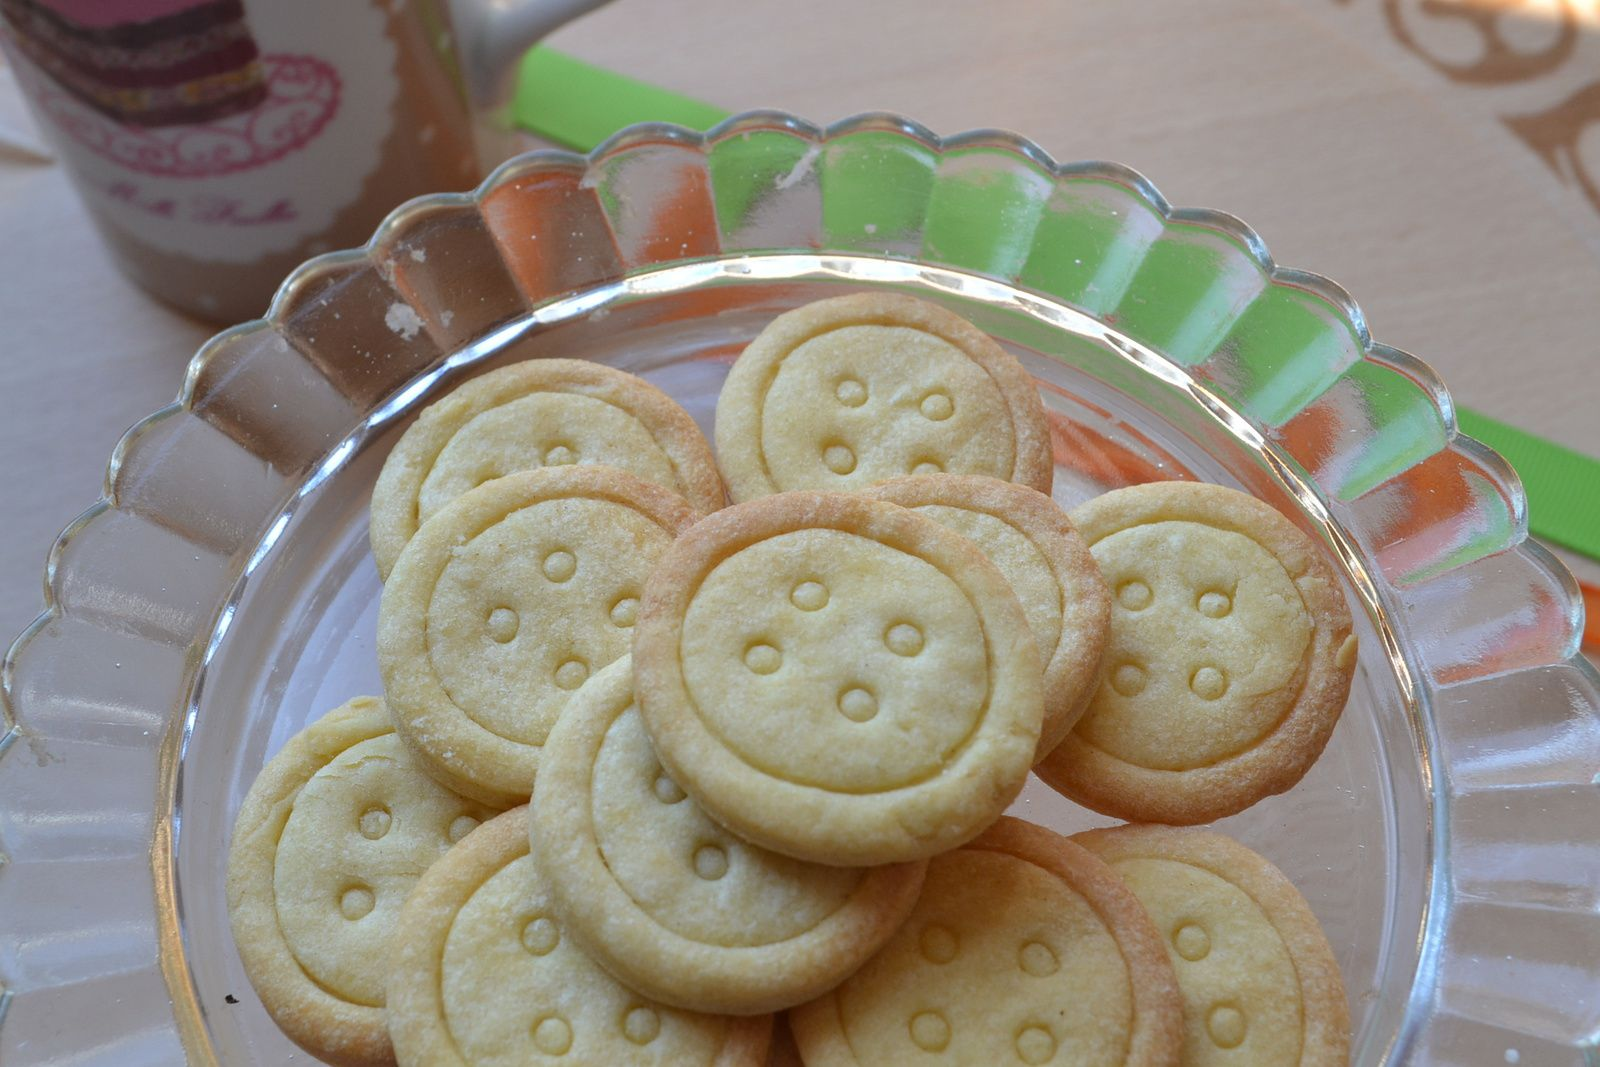 Petits biscuits boutons